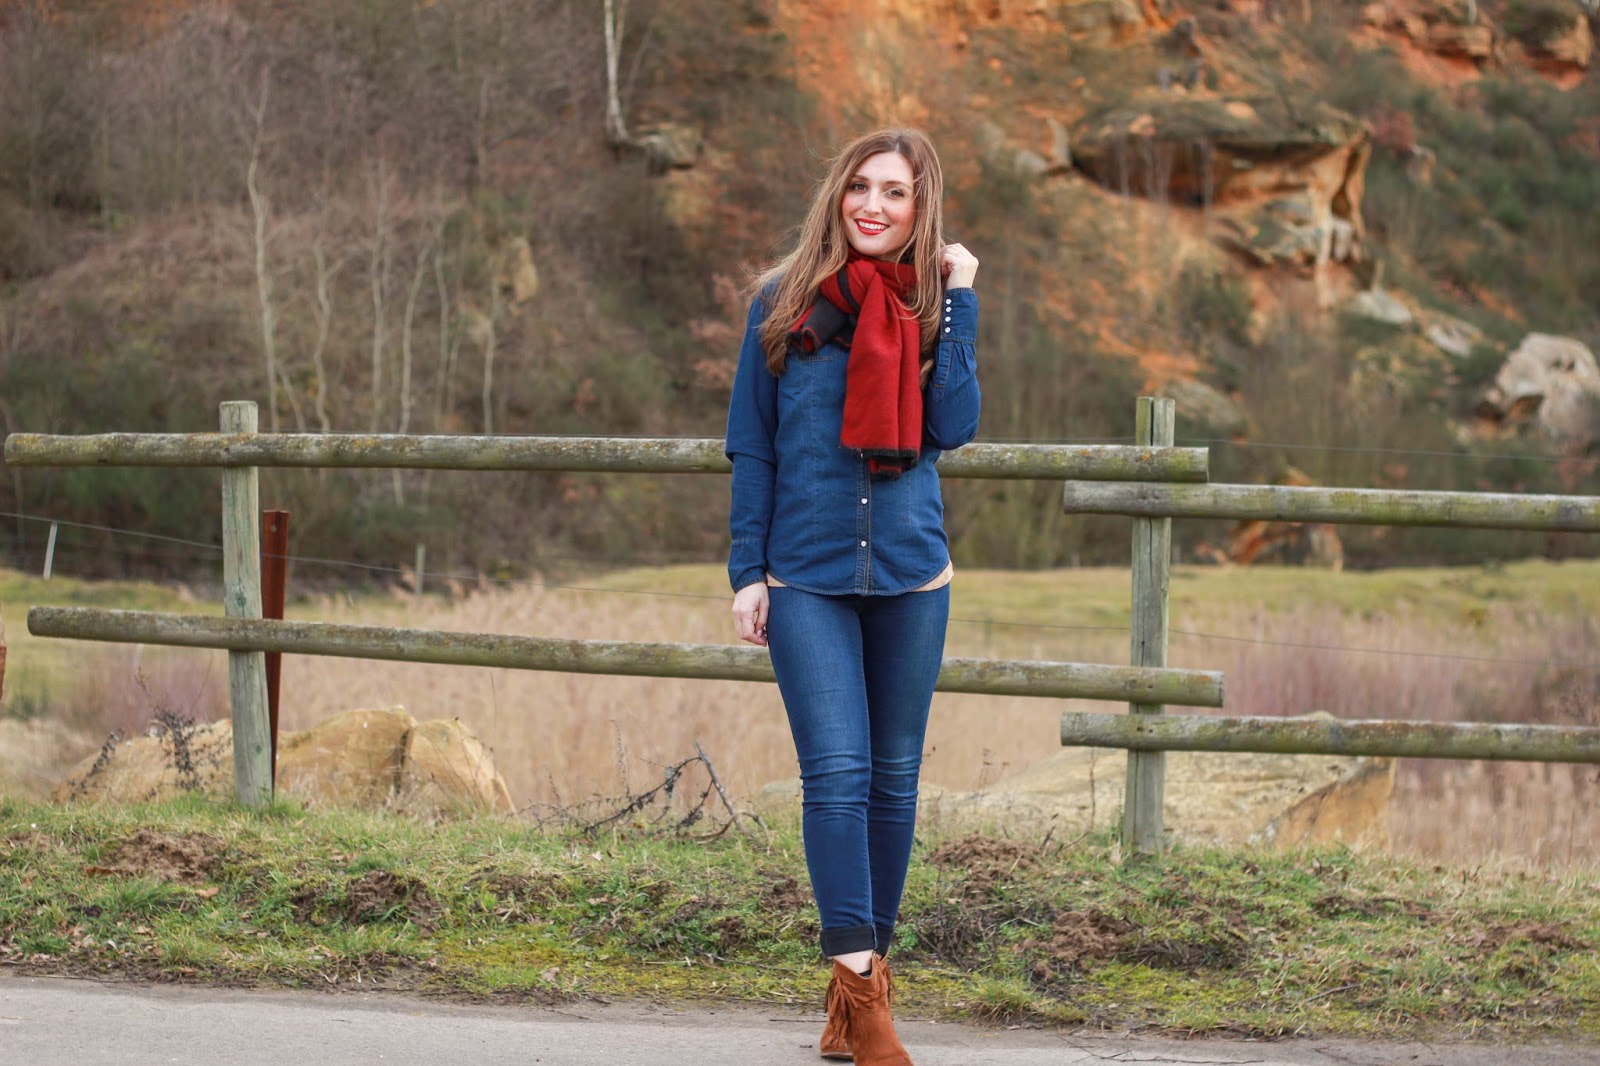 Denim Style - Fashionblogger - Fashionstyle - Fashionblogger aus Deutschland - Deutsche Fashionblogger - Fashionstylebyjohanna - Country Look - Country Outfit